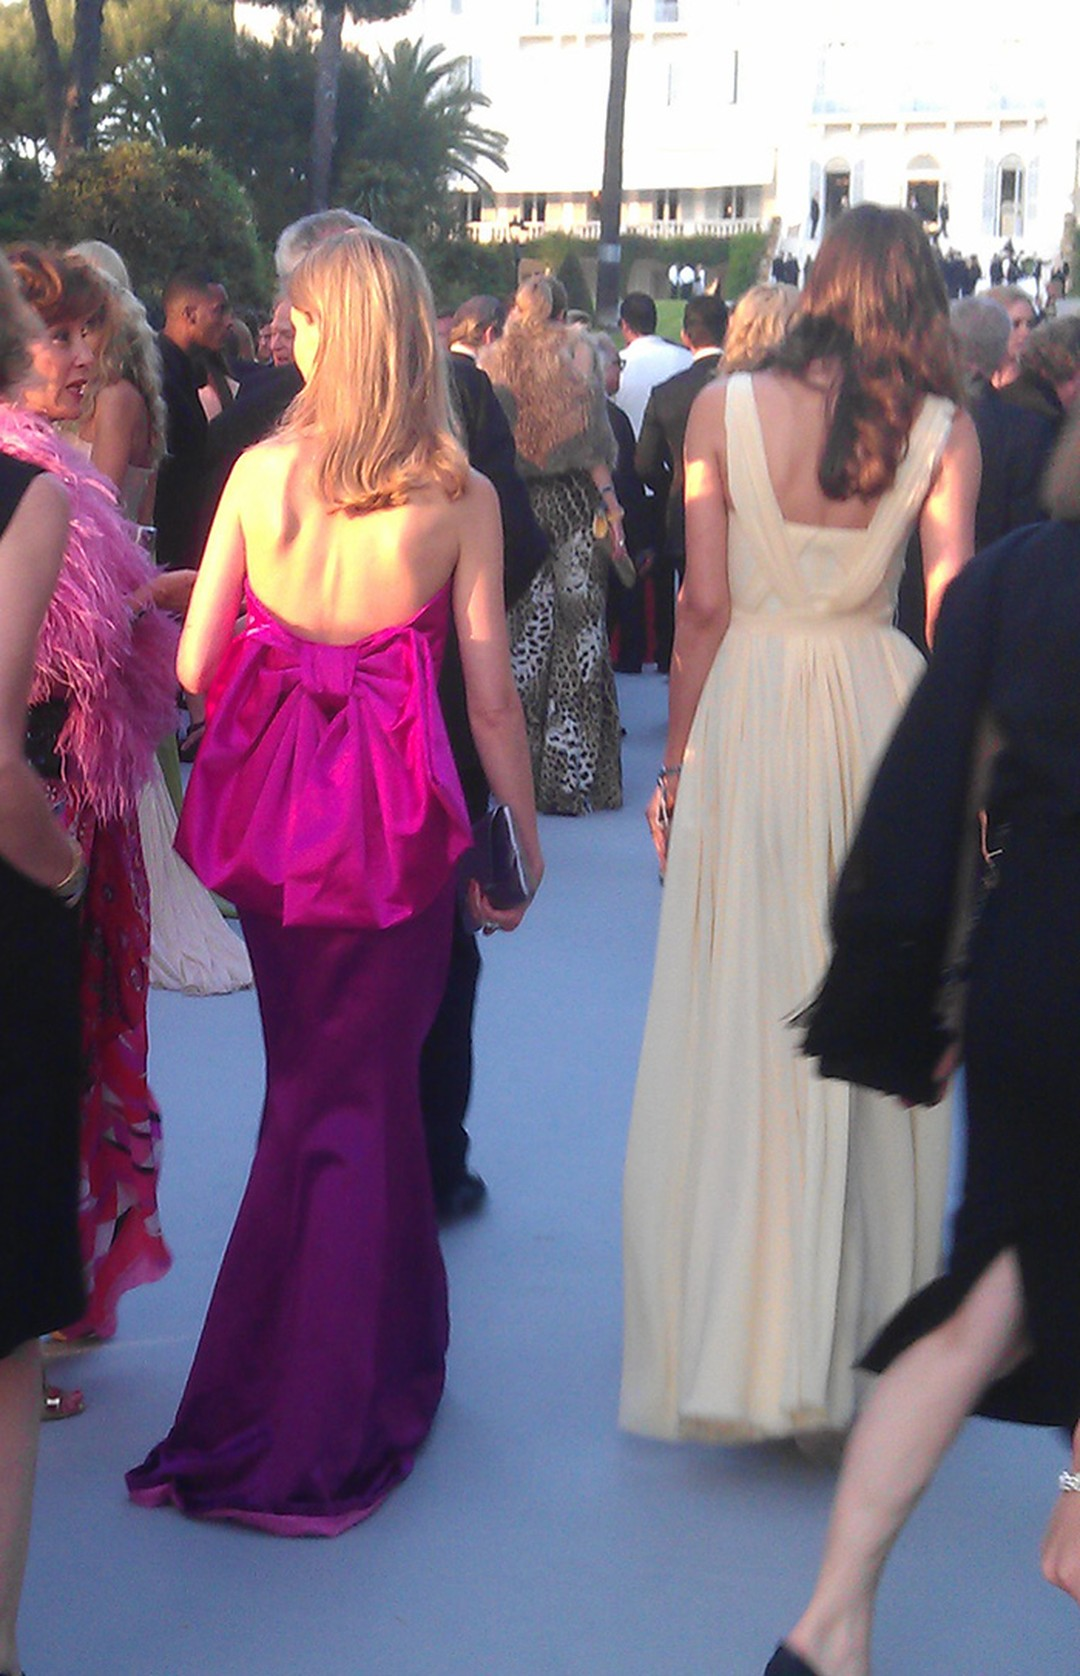 Beautiful-Gowns-and-ladies-at-AmfAR